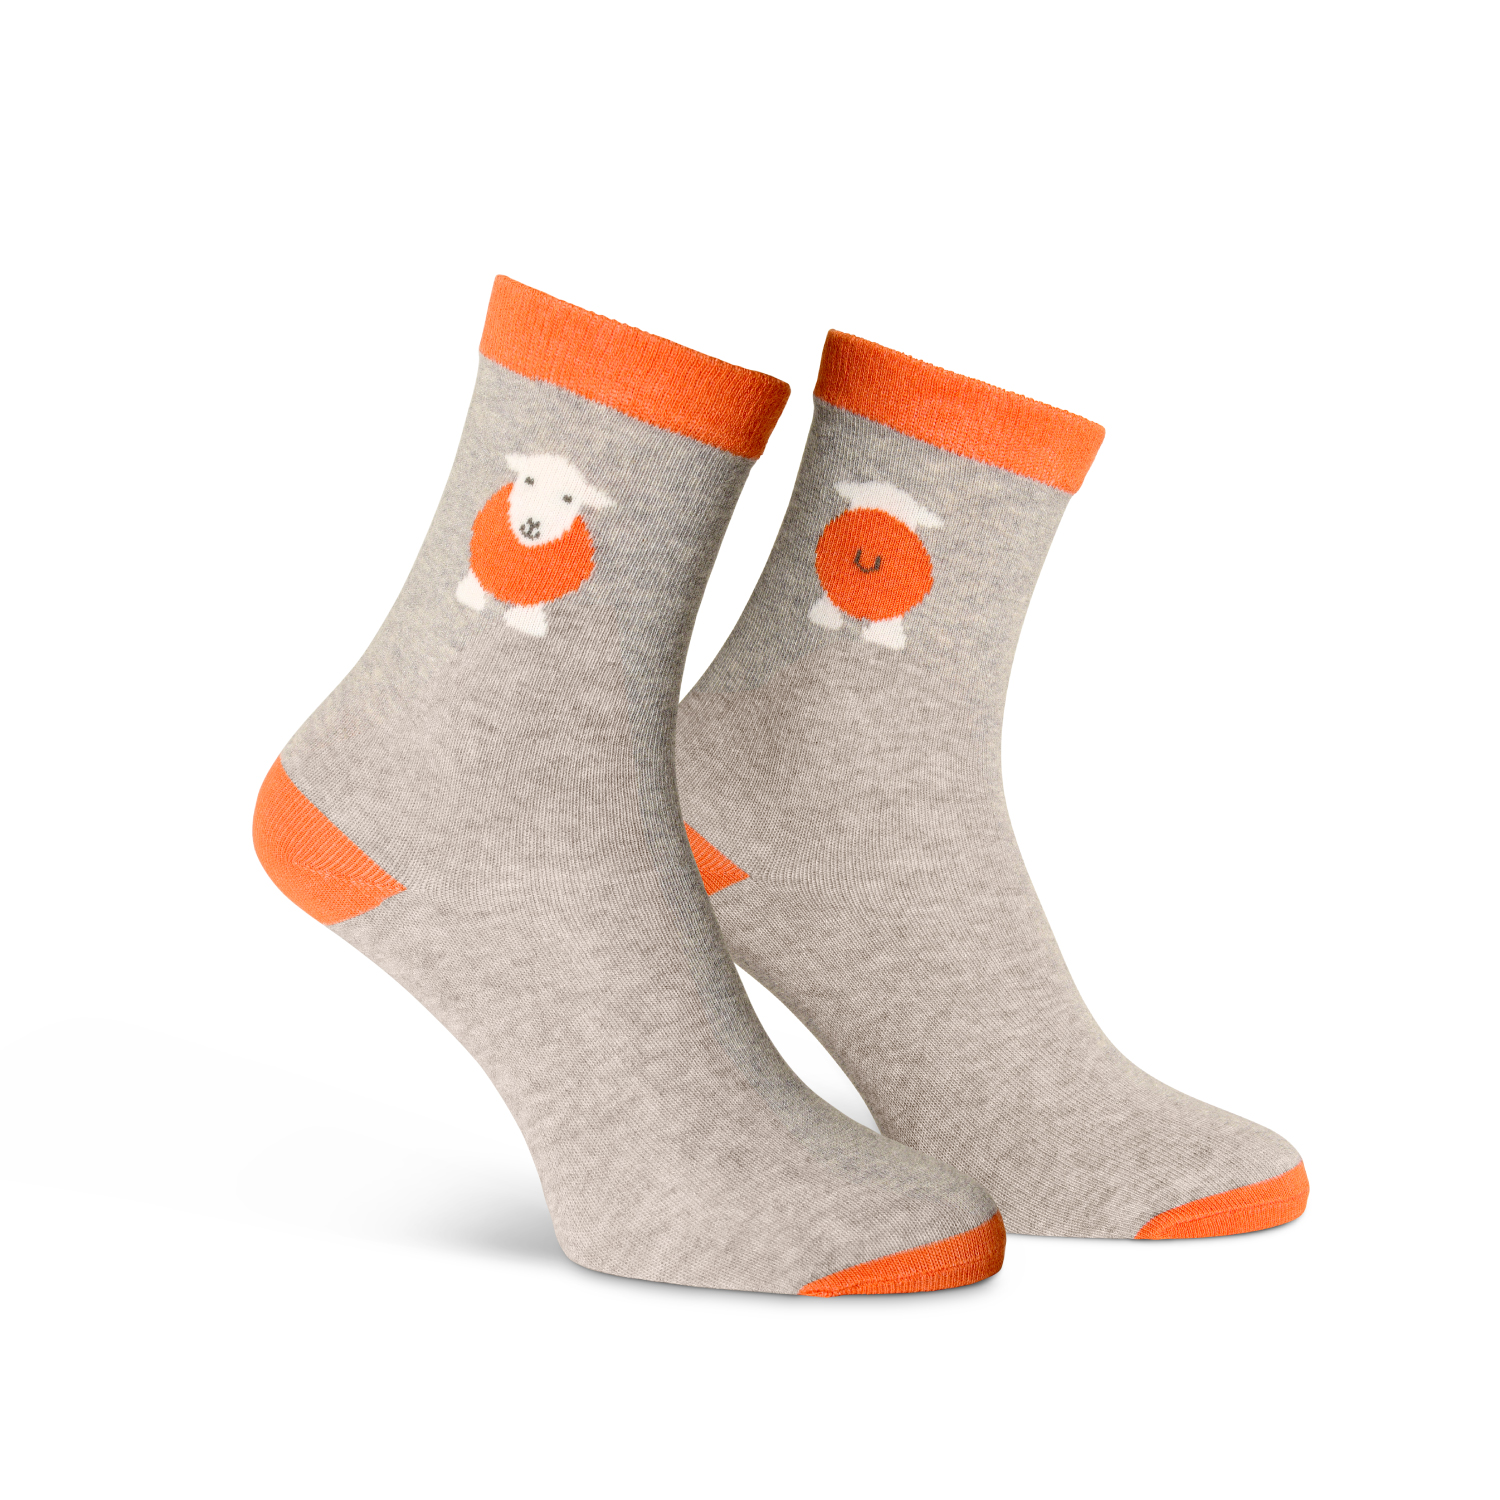 Kids Yan Socks - Orange - Size 9-12 (27-30)